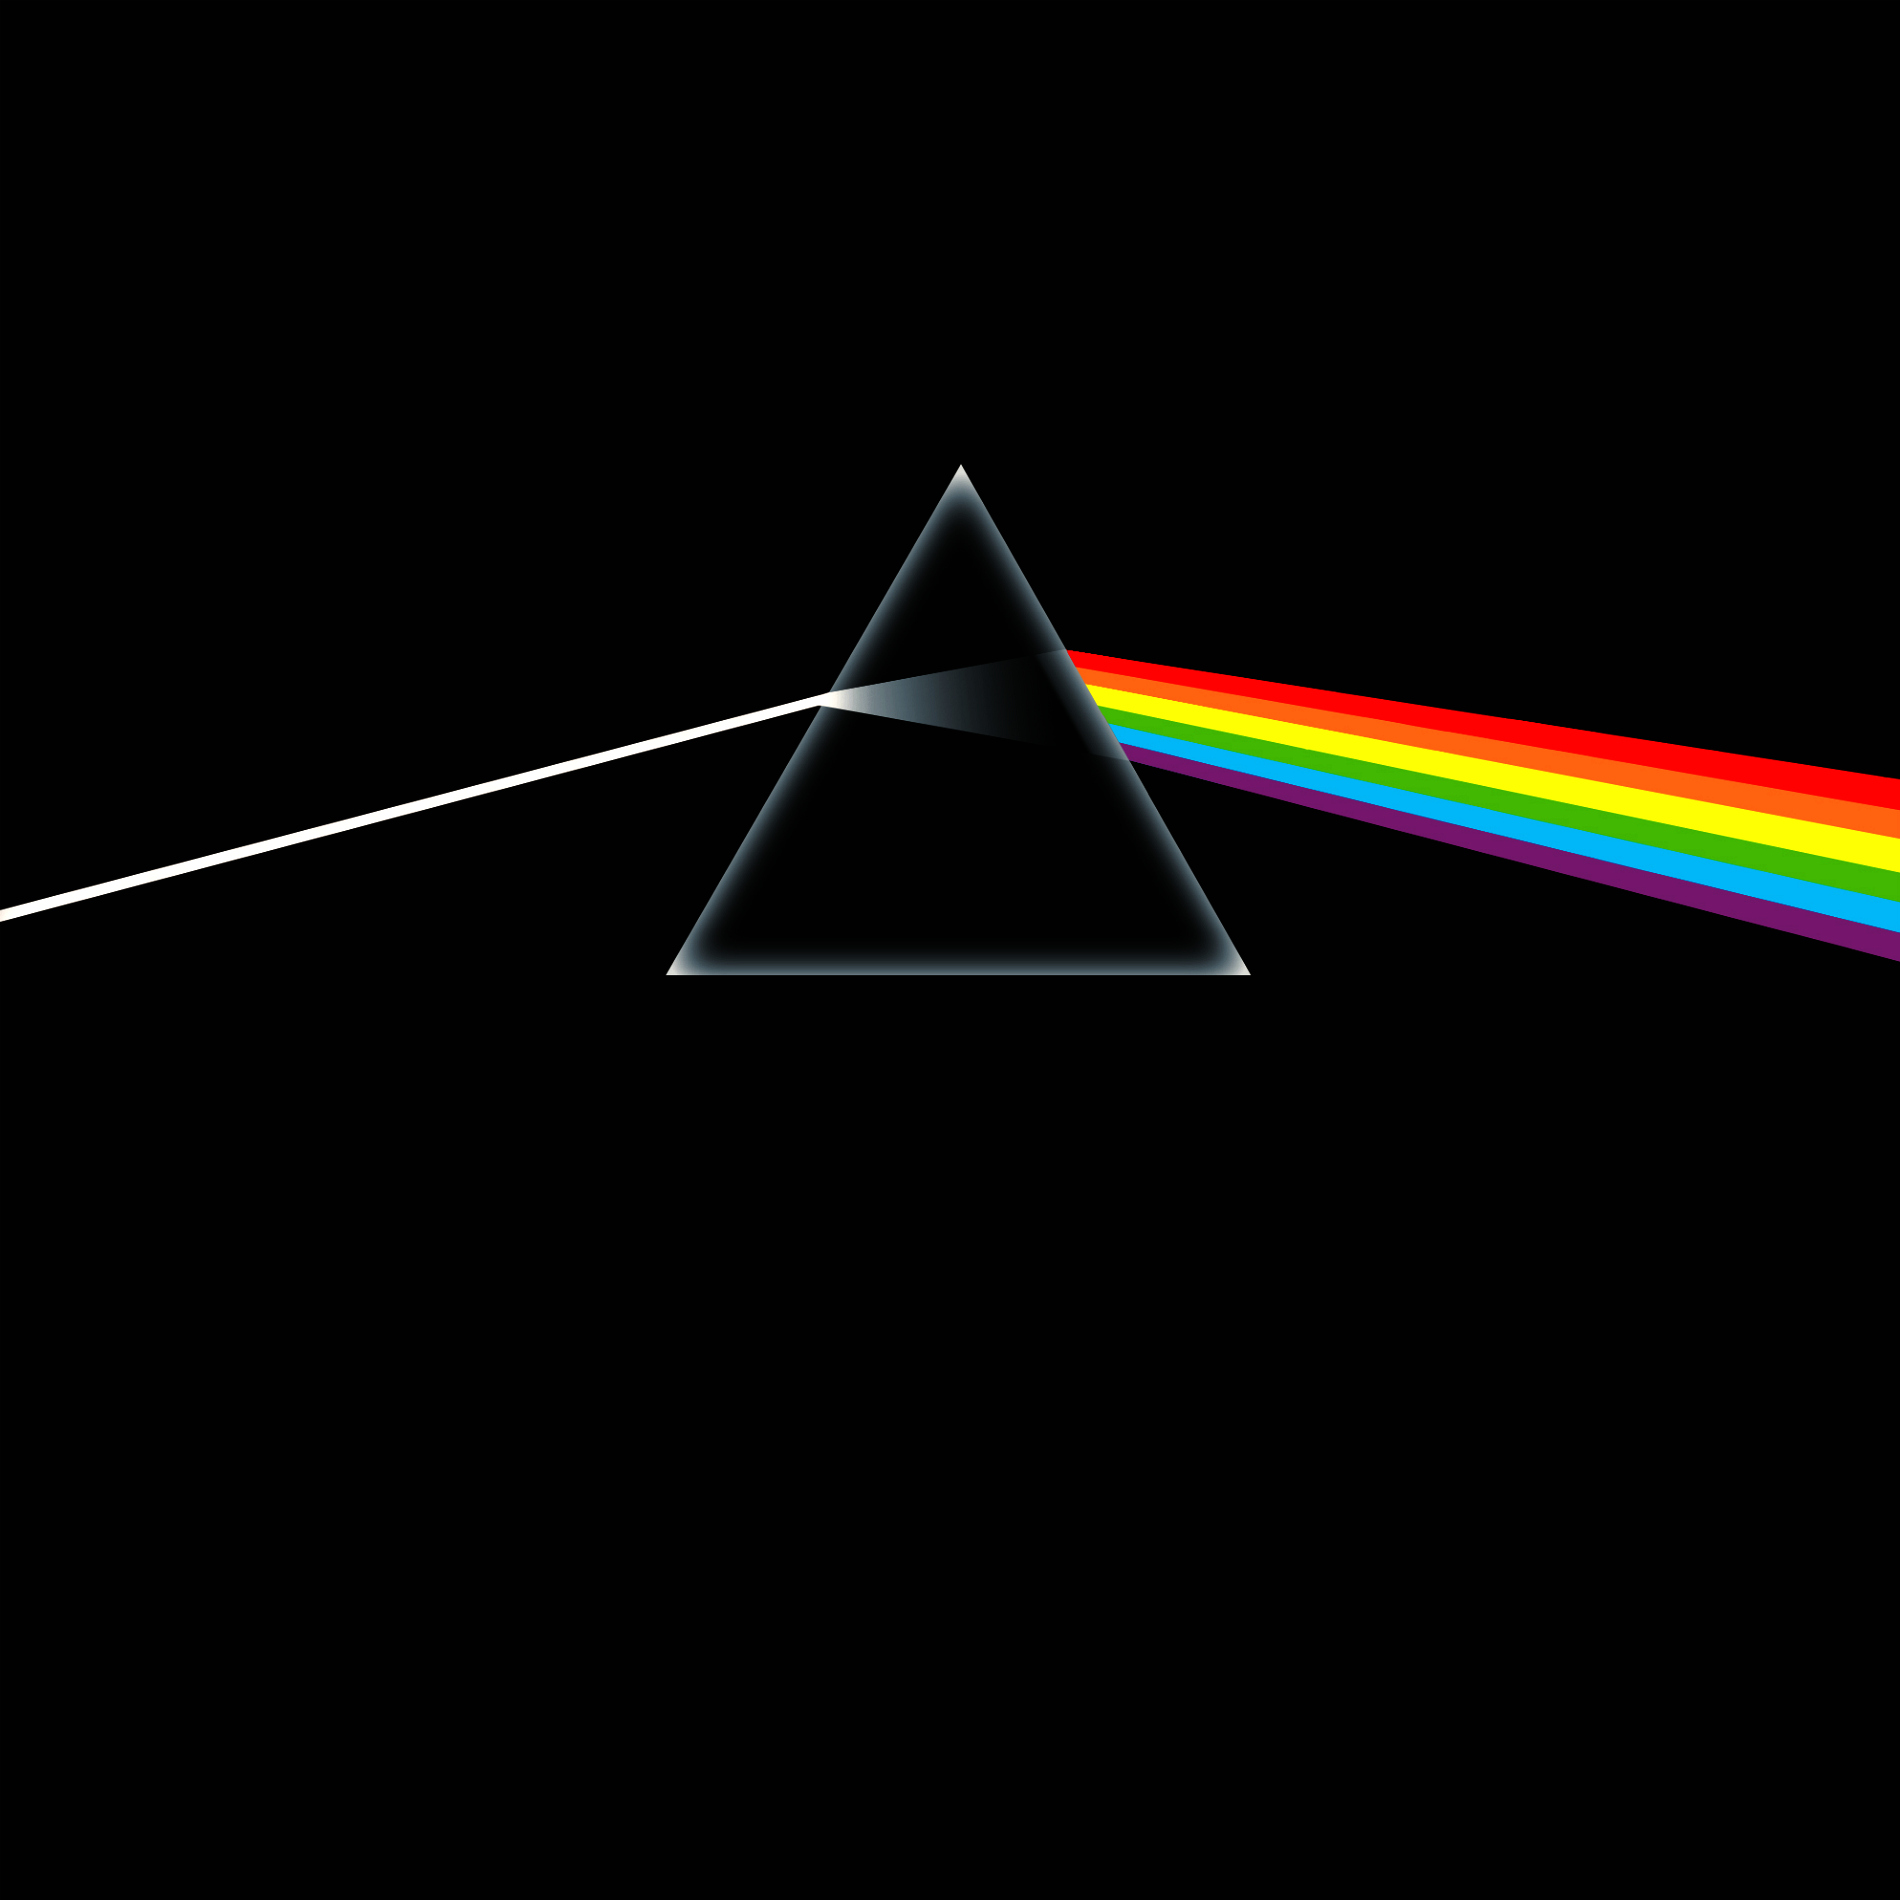 pink floyd dark side of the moon album cover The 100 Greatest Albums of All Time